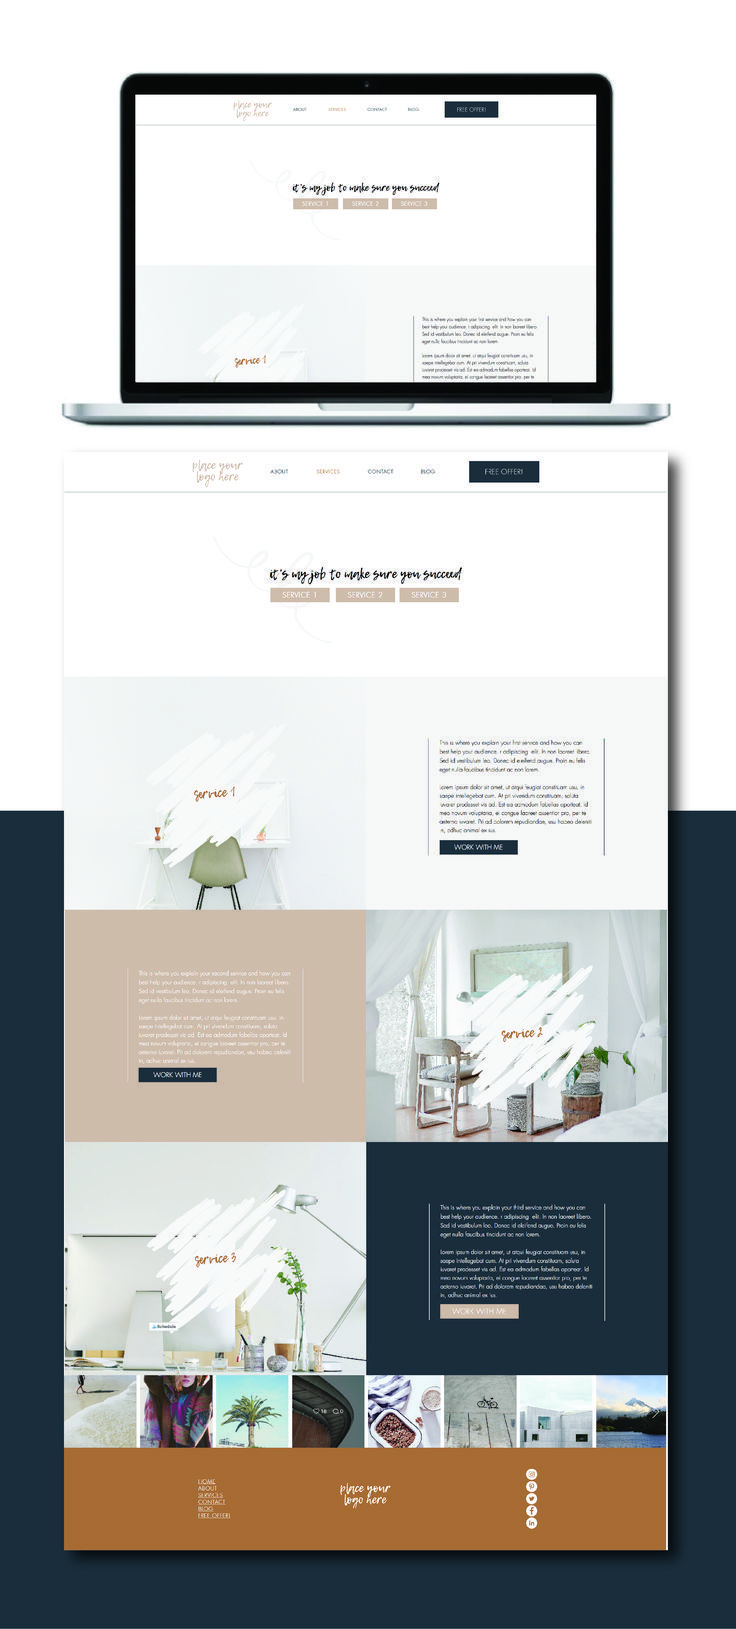 Wix Website Template Custom Template For Small Business Etsy Wix Website Templates Small Business Website Design Wix Website Design